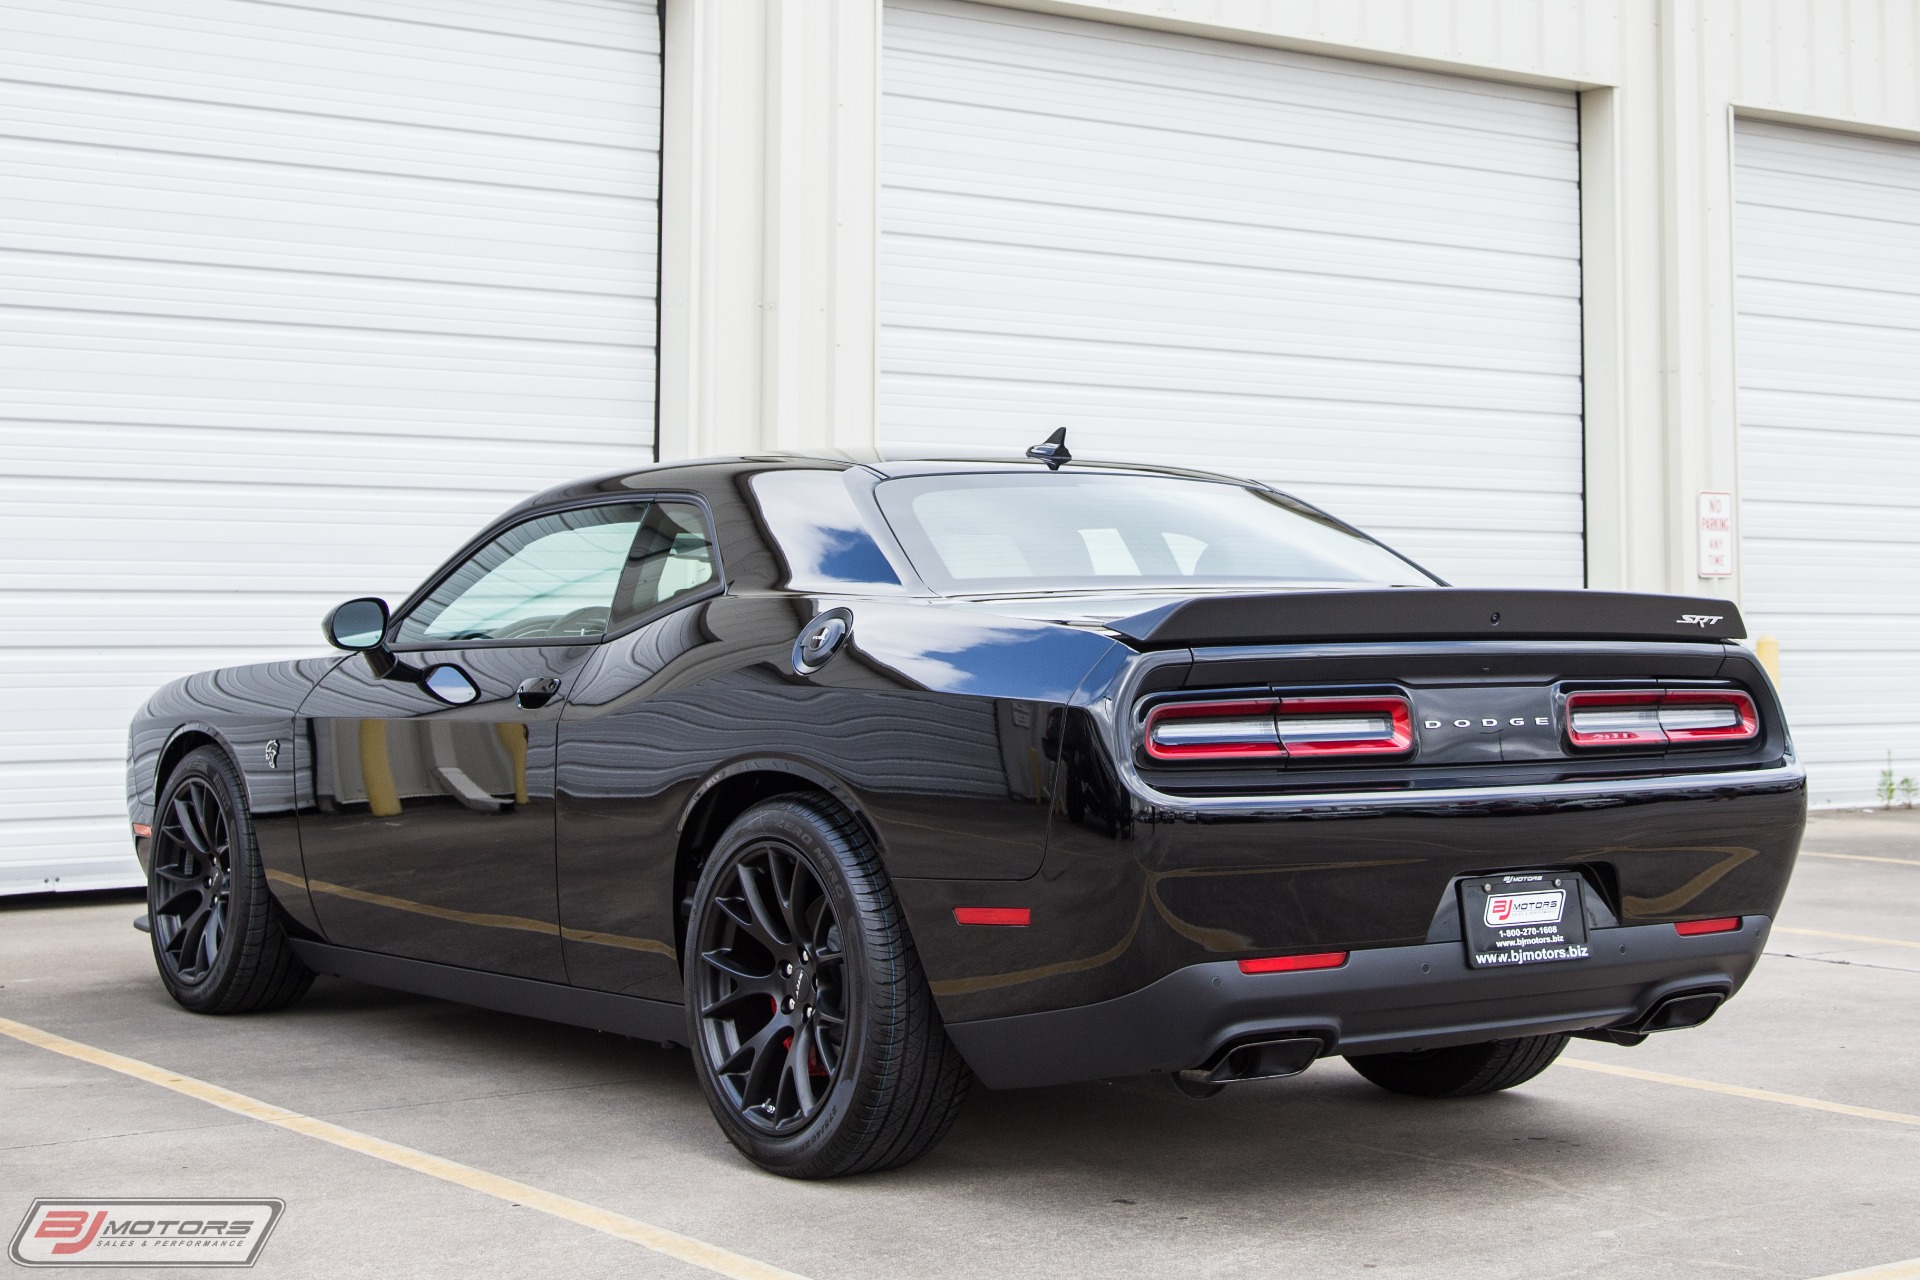 Used-2016-Dodge-Challenger-SRT-Hellcat-With-14-Miles